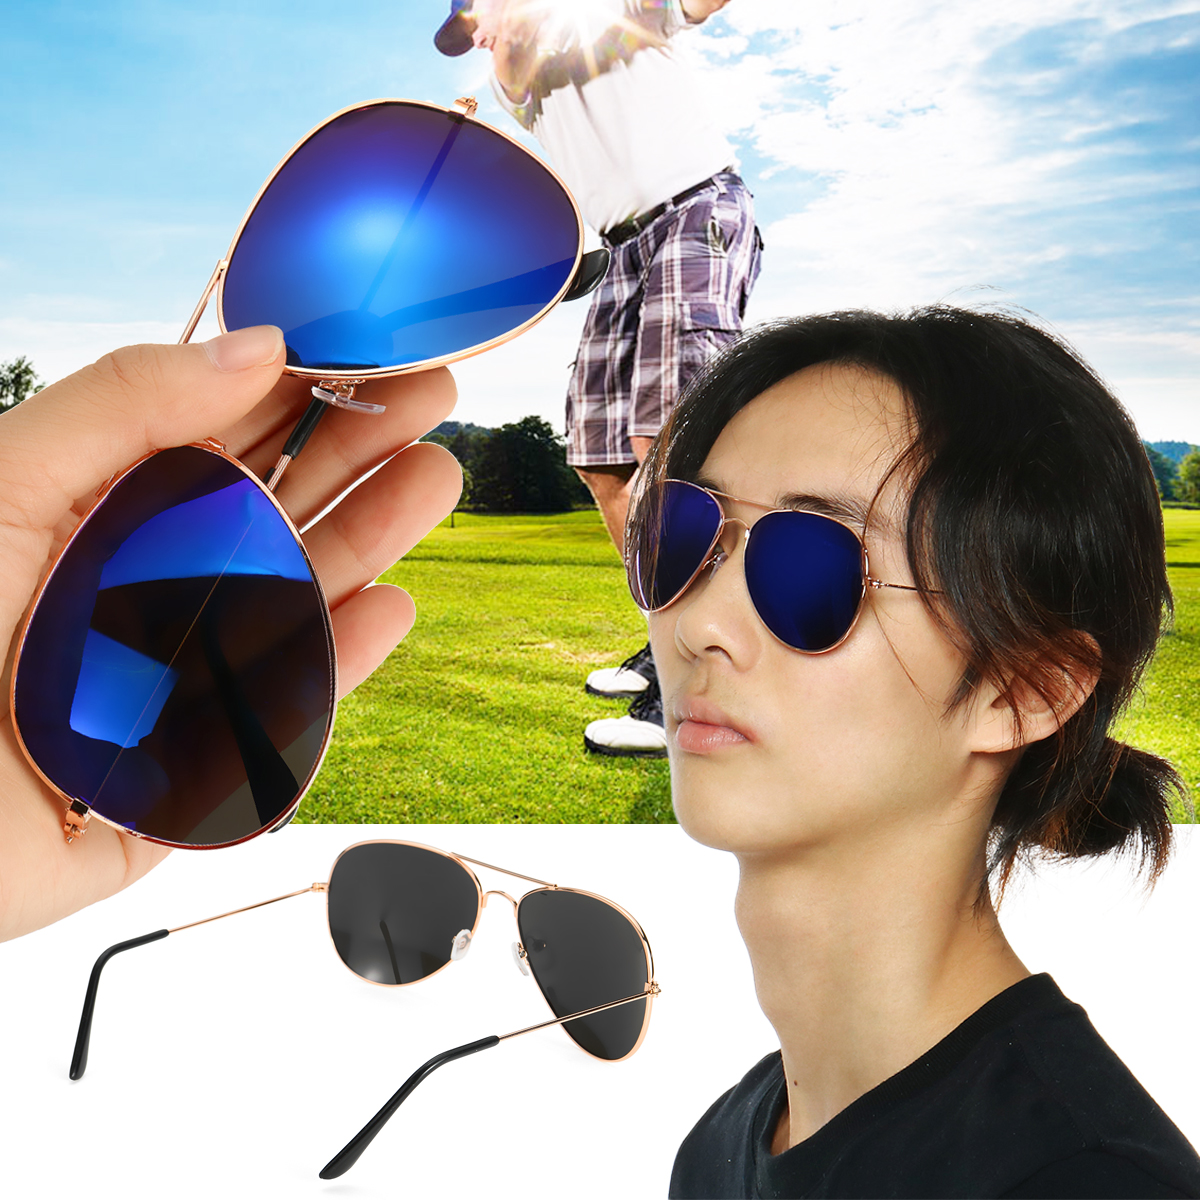 Men Retro Sunglasses Fishing Golf Ball Finder Glasses Eye Protection Golf Accessories Blue Lenses Sport Glasse